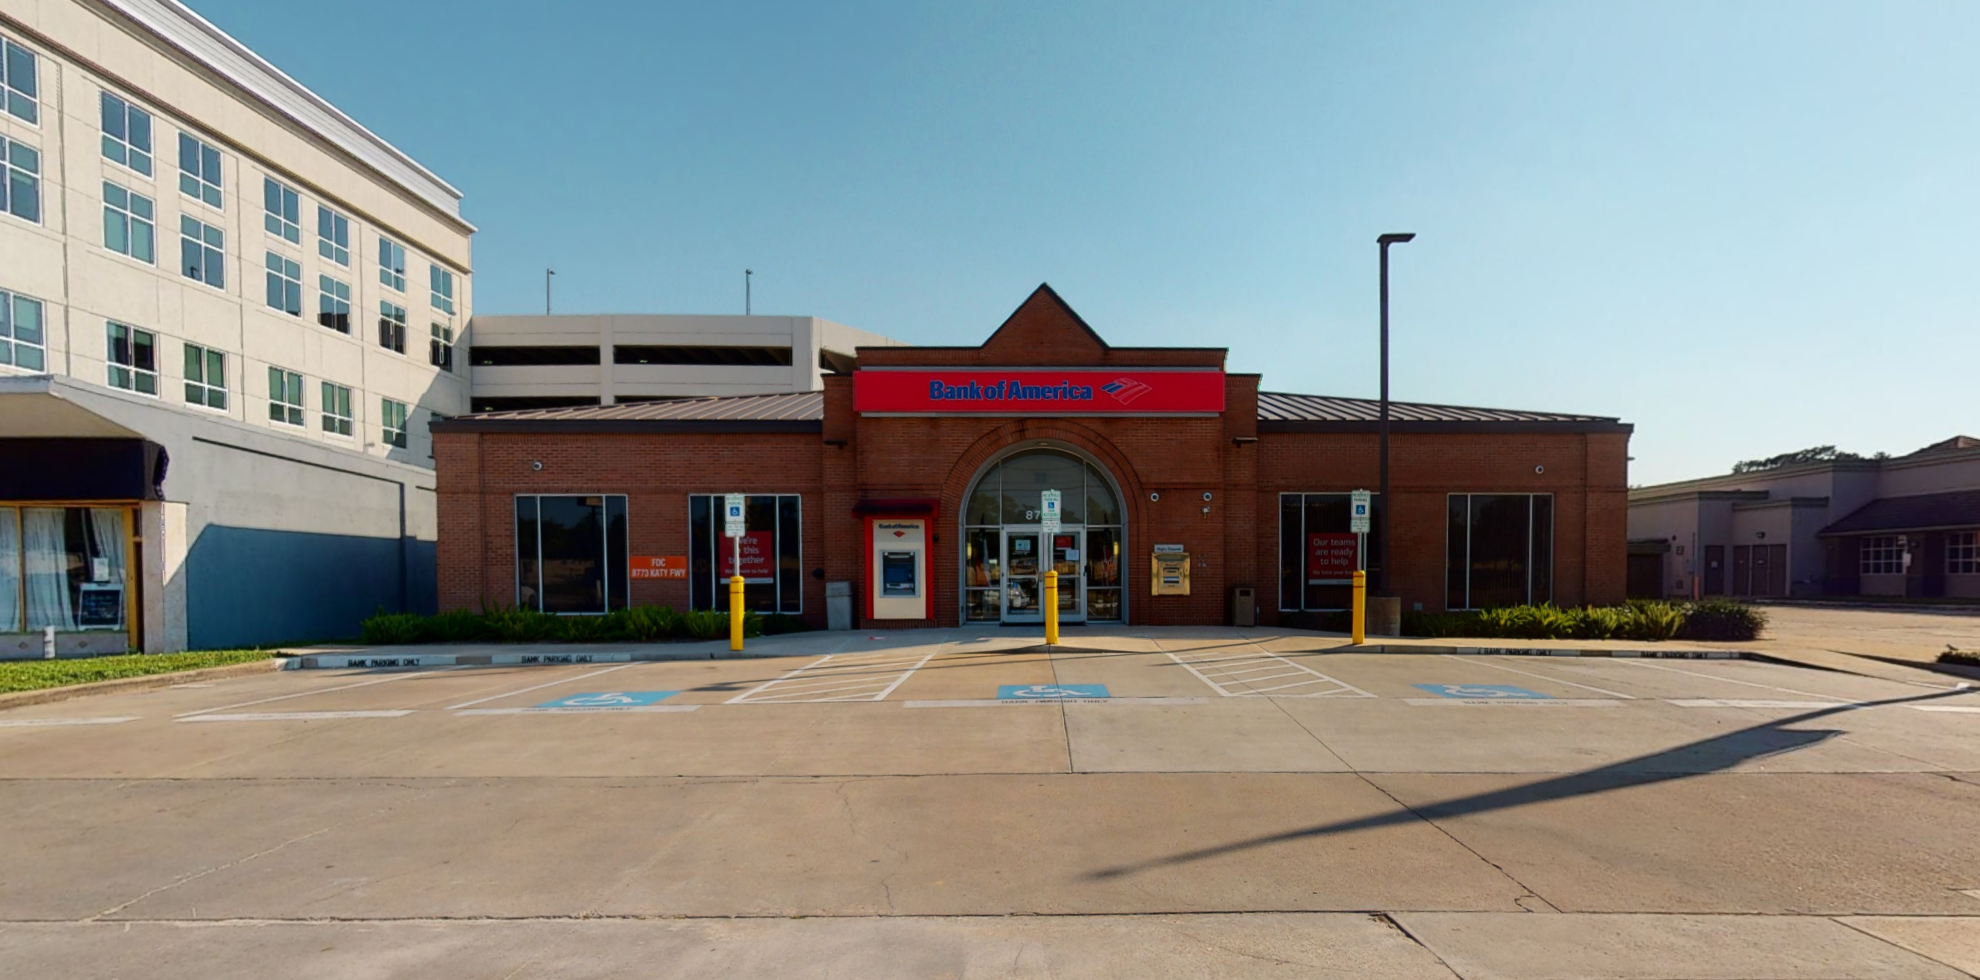 Bank of America financial center with drive-thru ATM | 8773 Katy Fwy, Houston, TX 77024